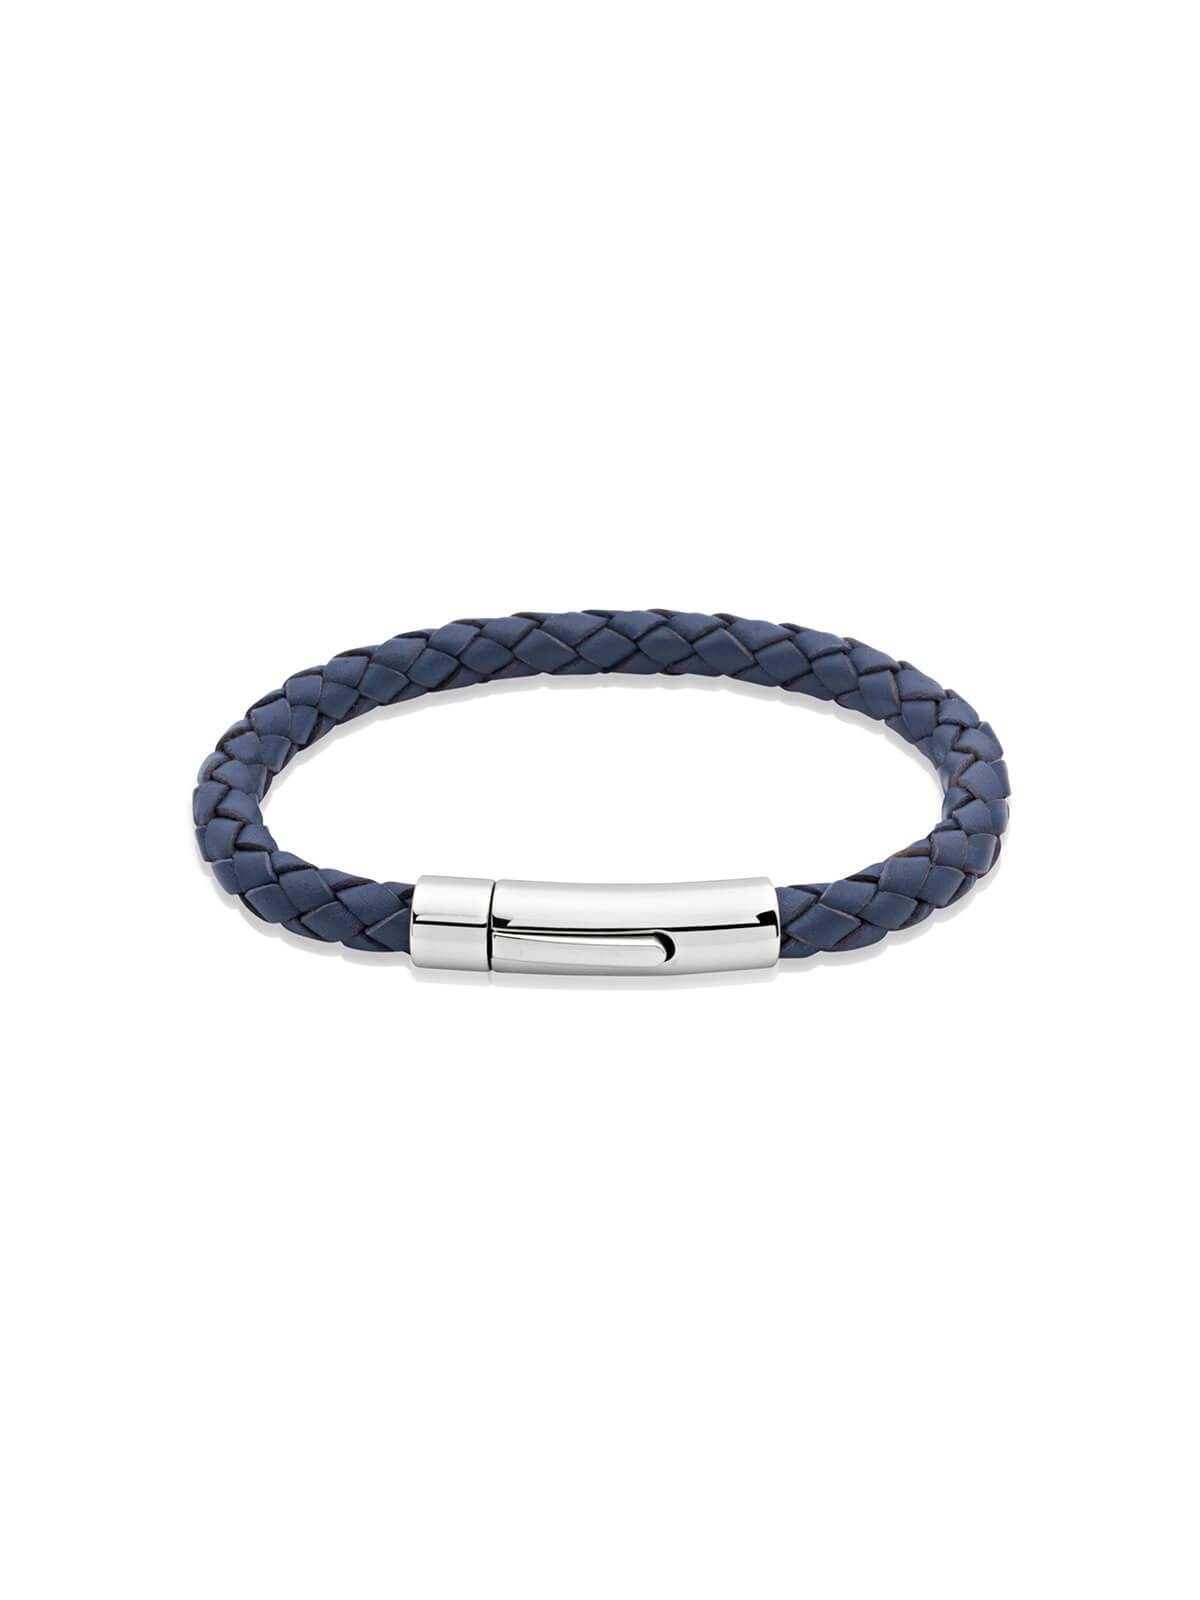 Unique & Co. 23cm Blue Leather Bracelet A40BLUE/23CM